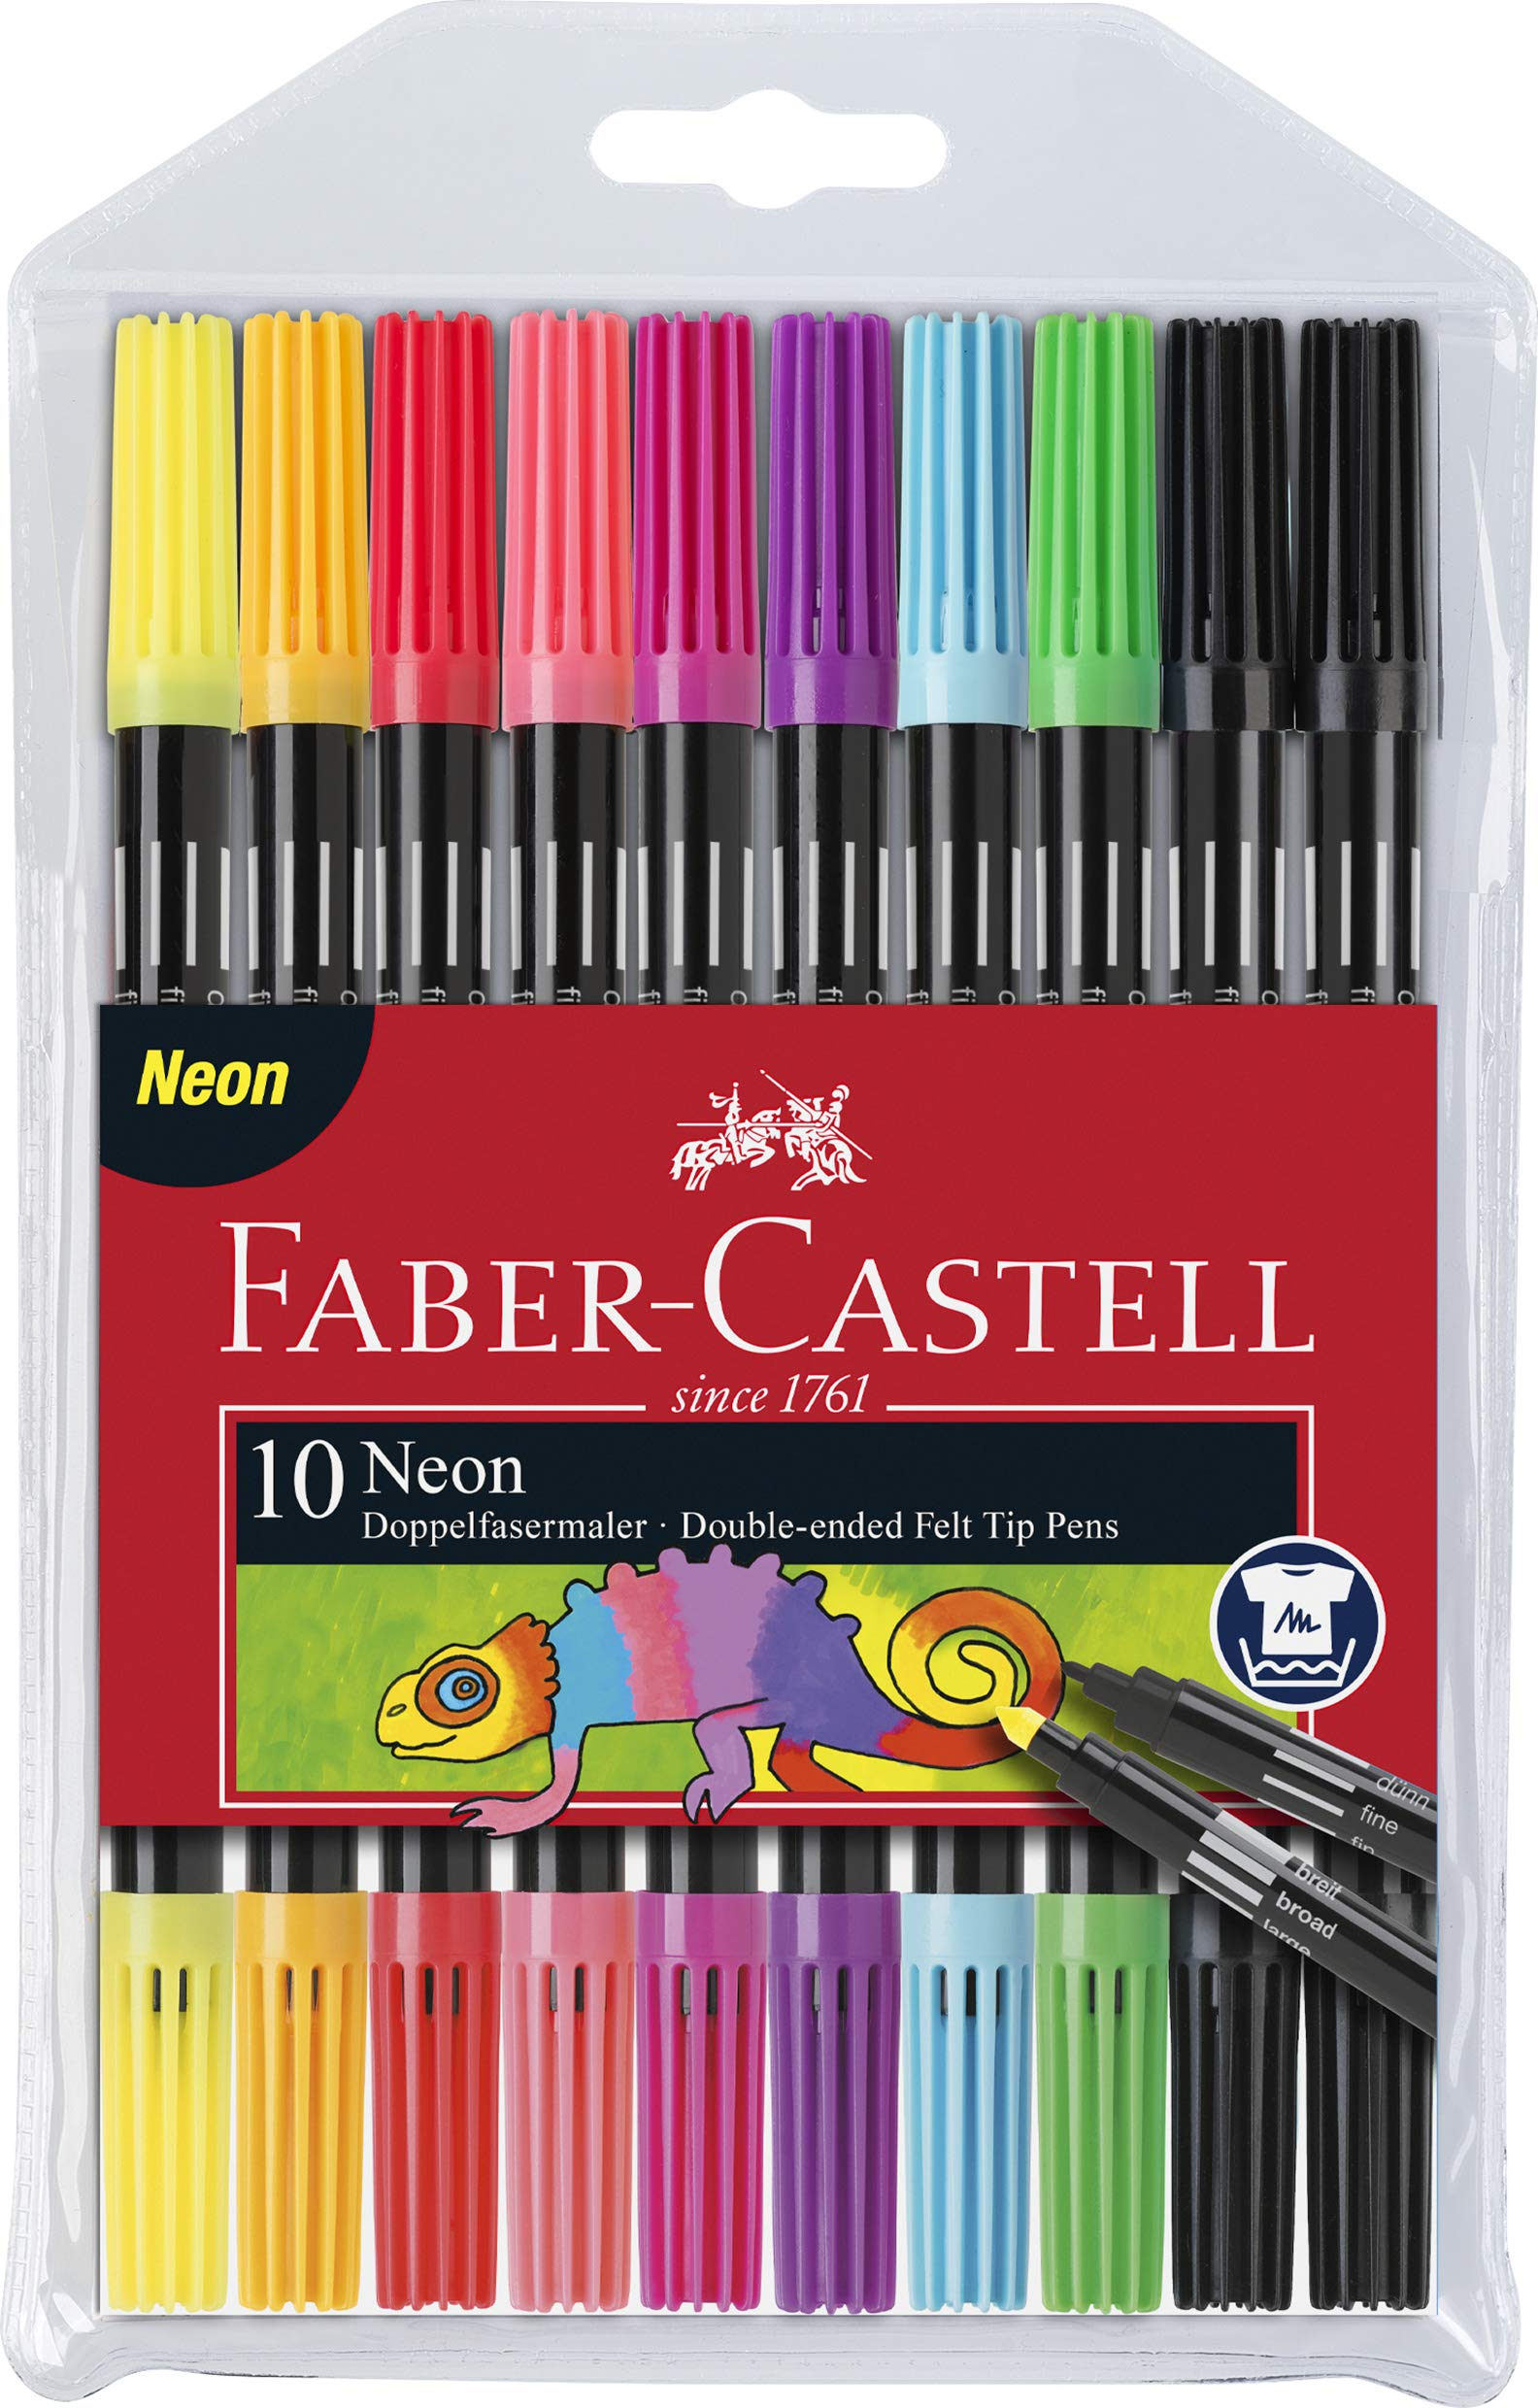 Faber-Castell Neon Double-Ended Felt Tip Pens - Set of 10